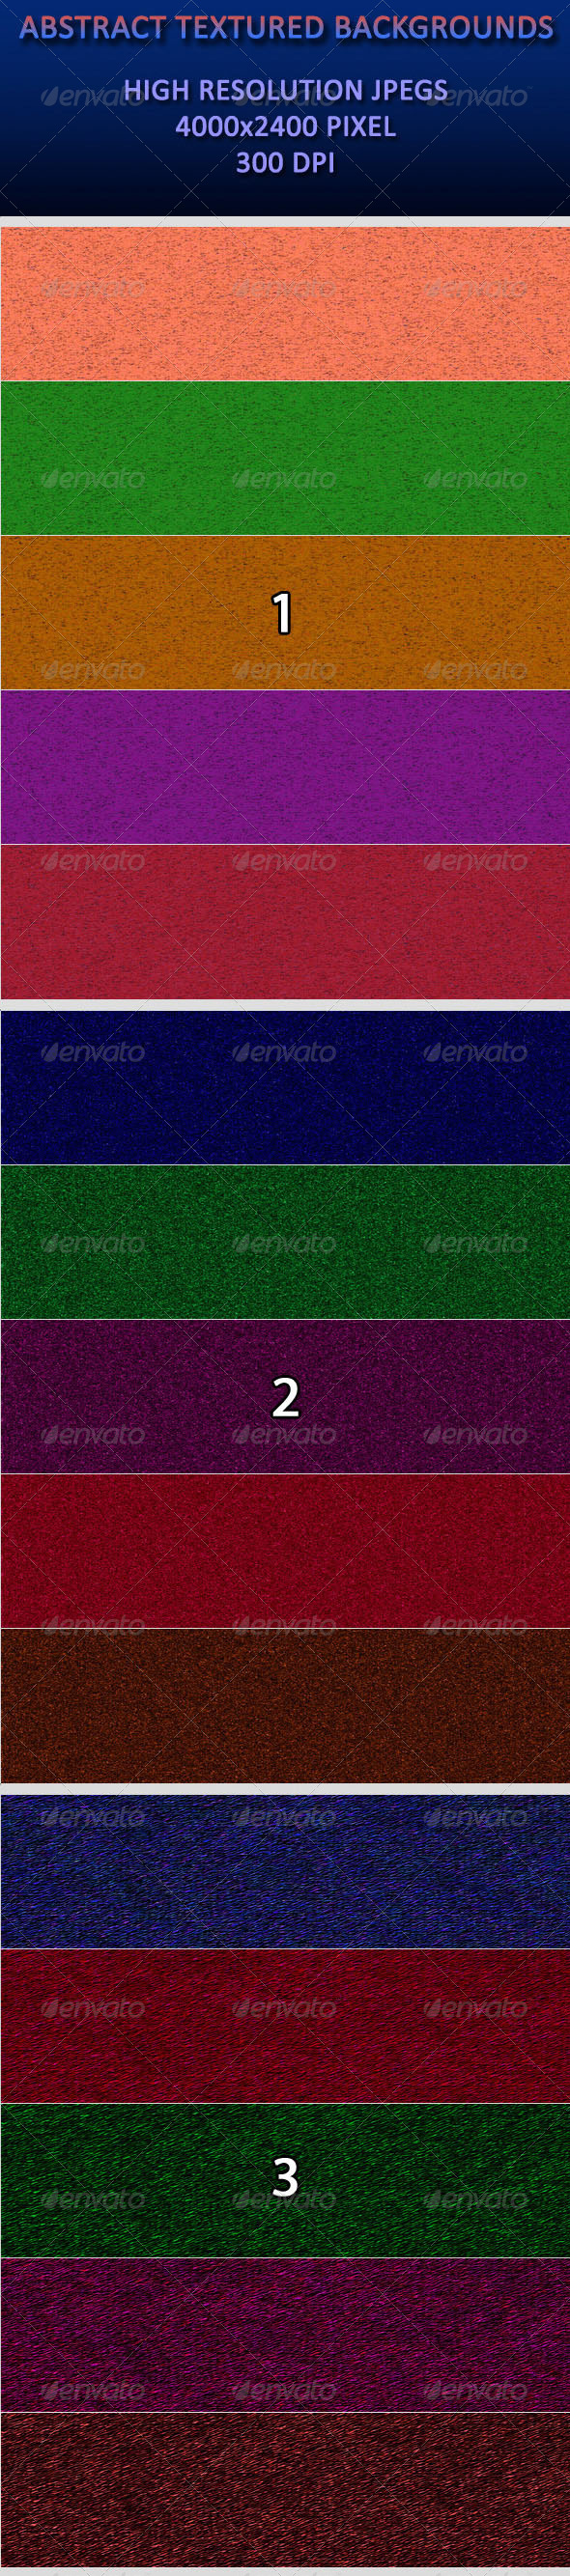 GraphicRiver Abstract Textured Backgrounds 4184419